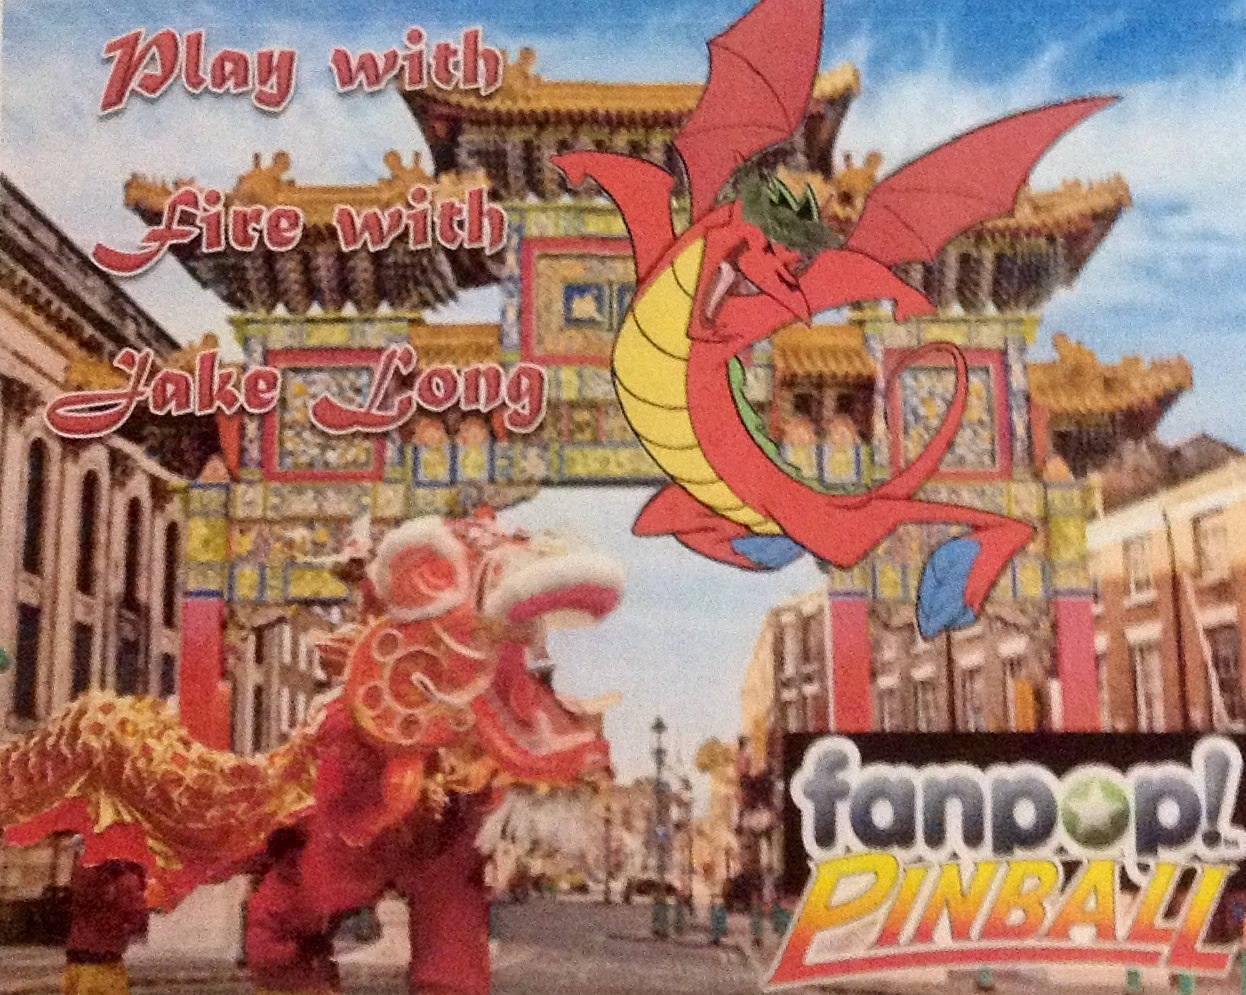 American Dragon Jake Long Pinball Ad